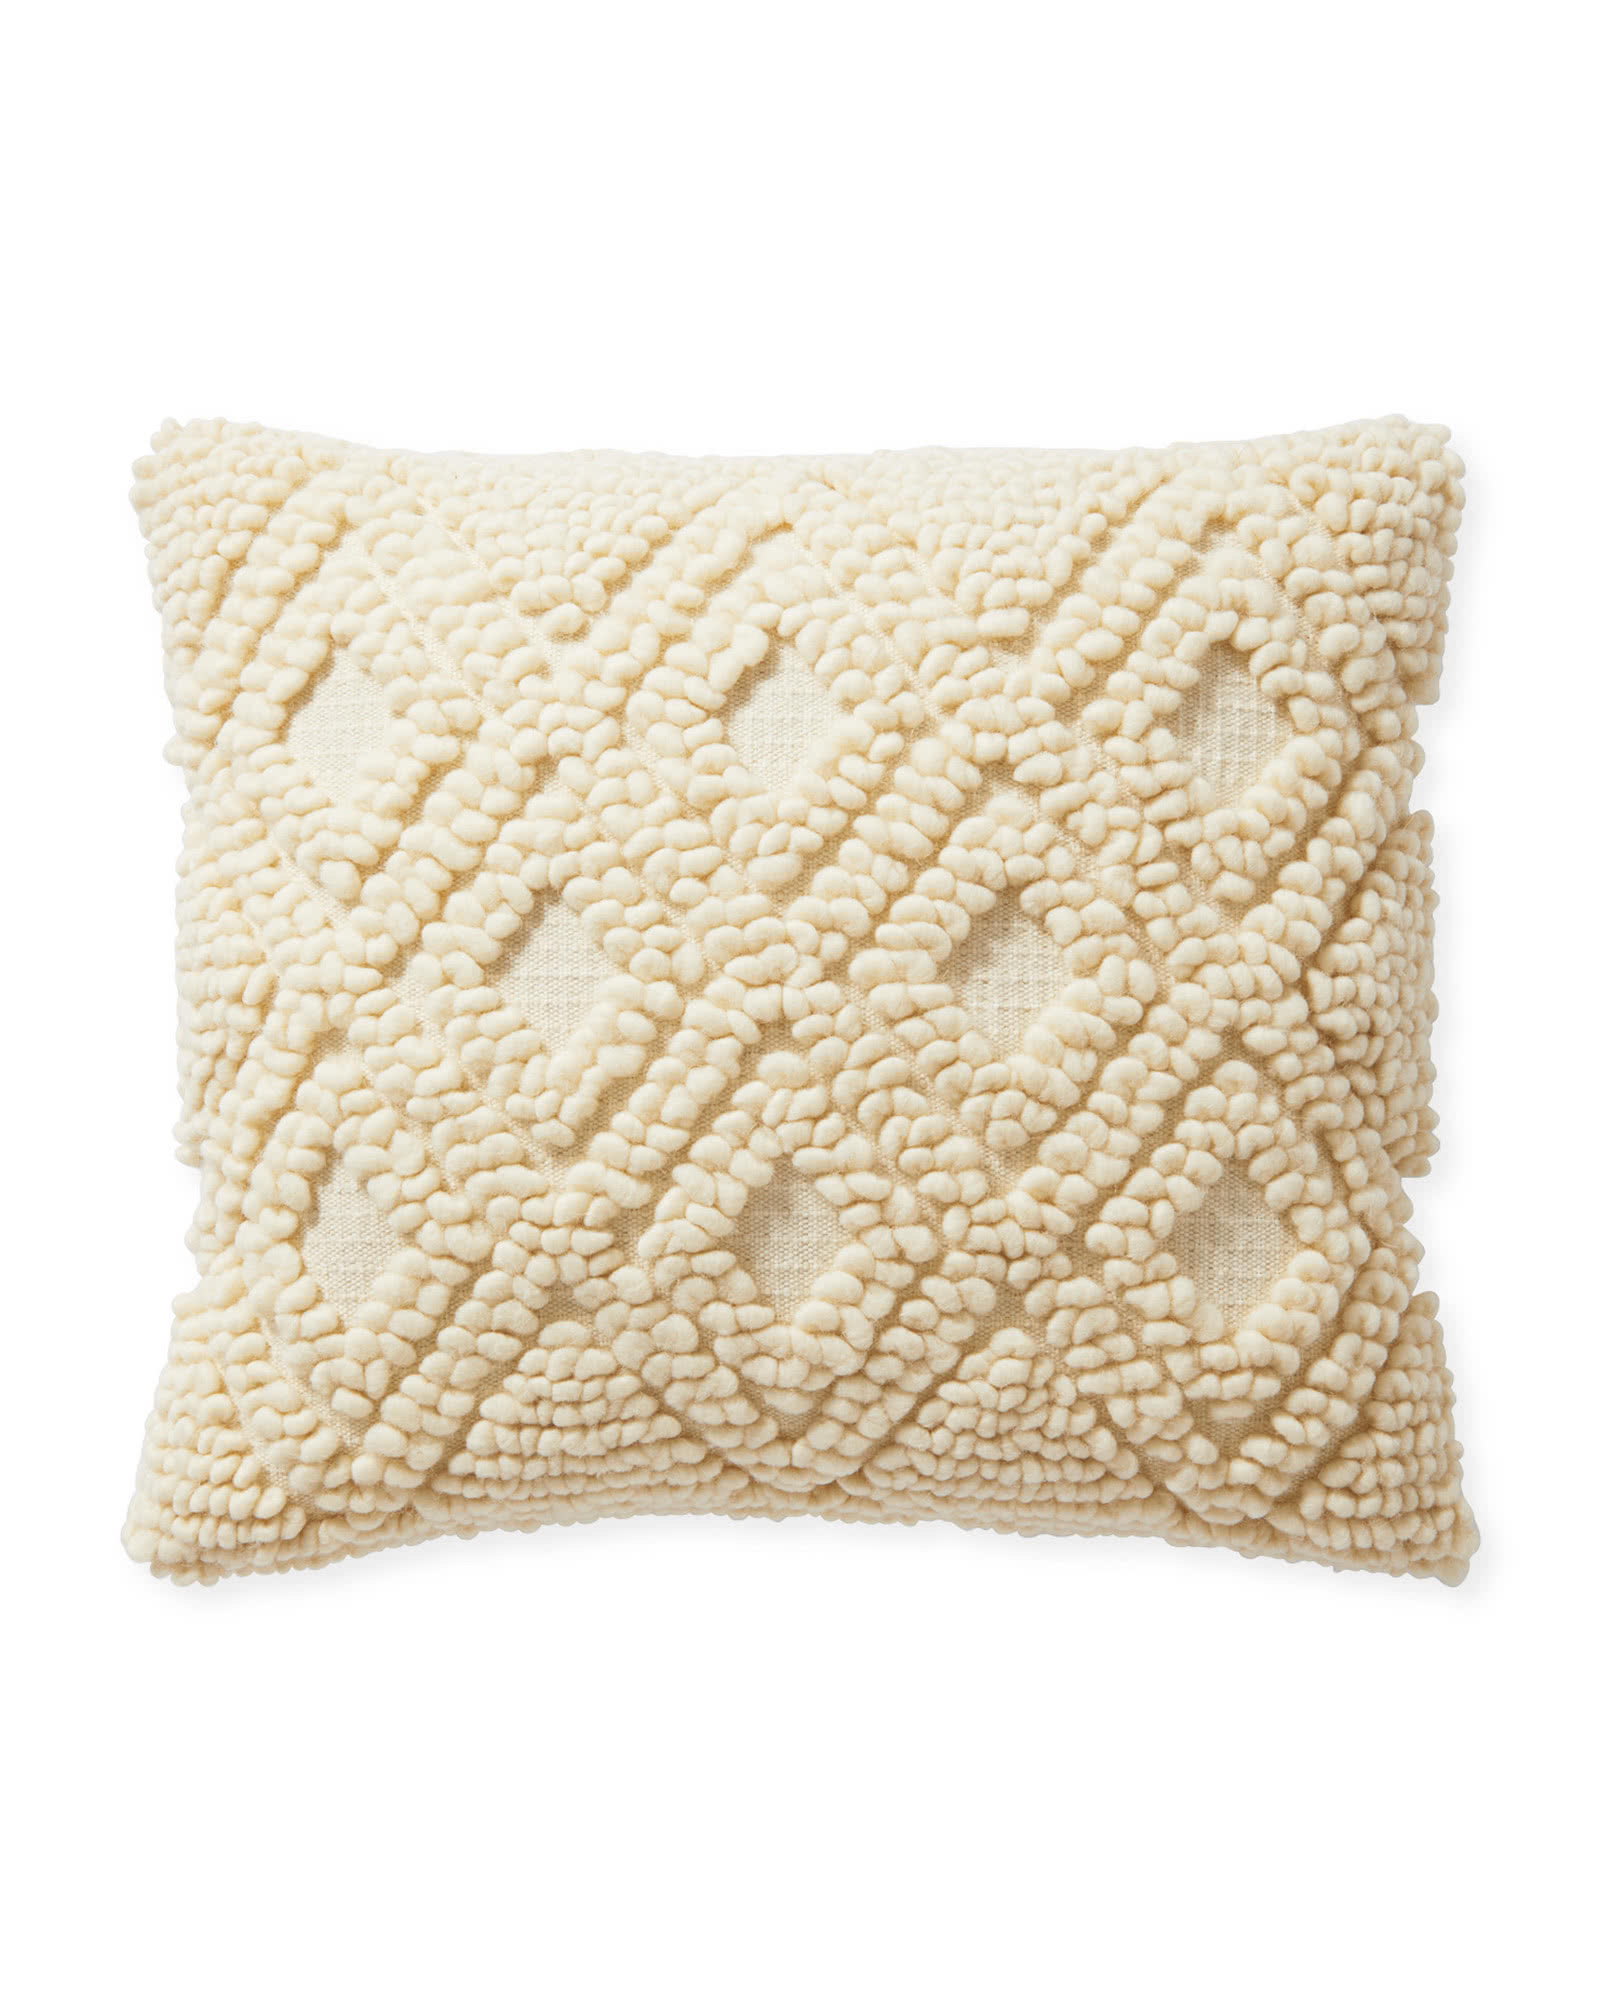 Amalie Pillow Cover, Ivory